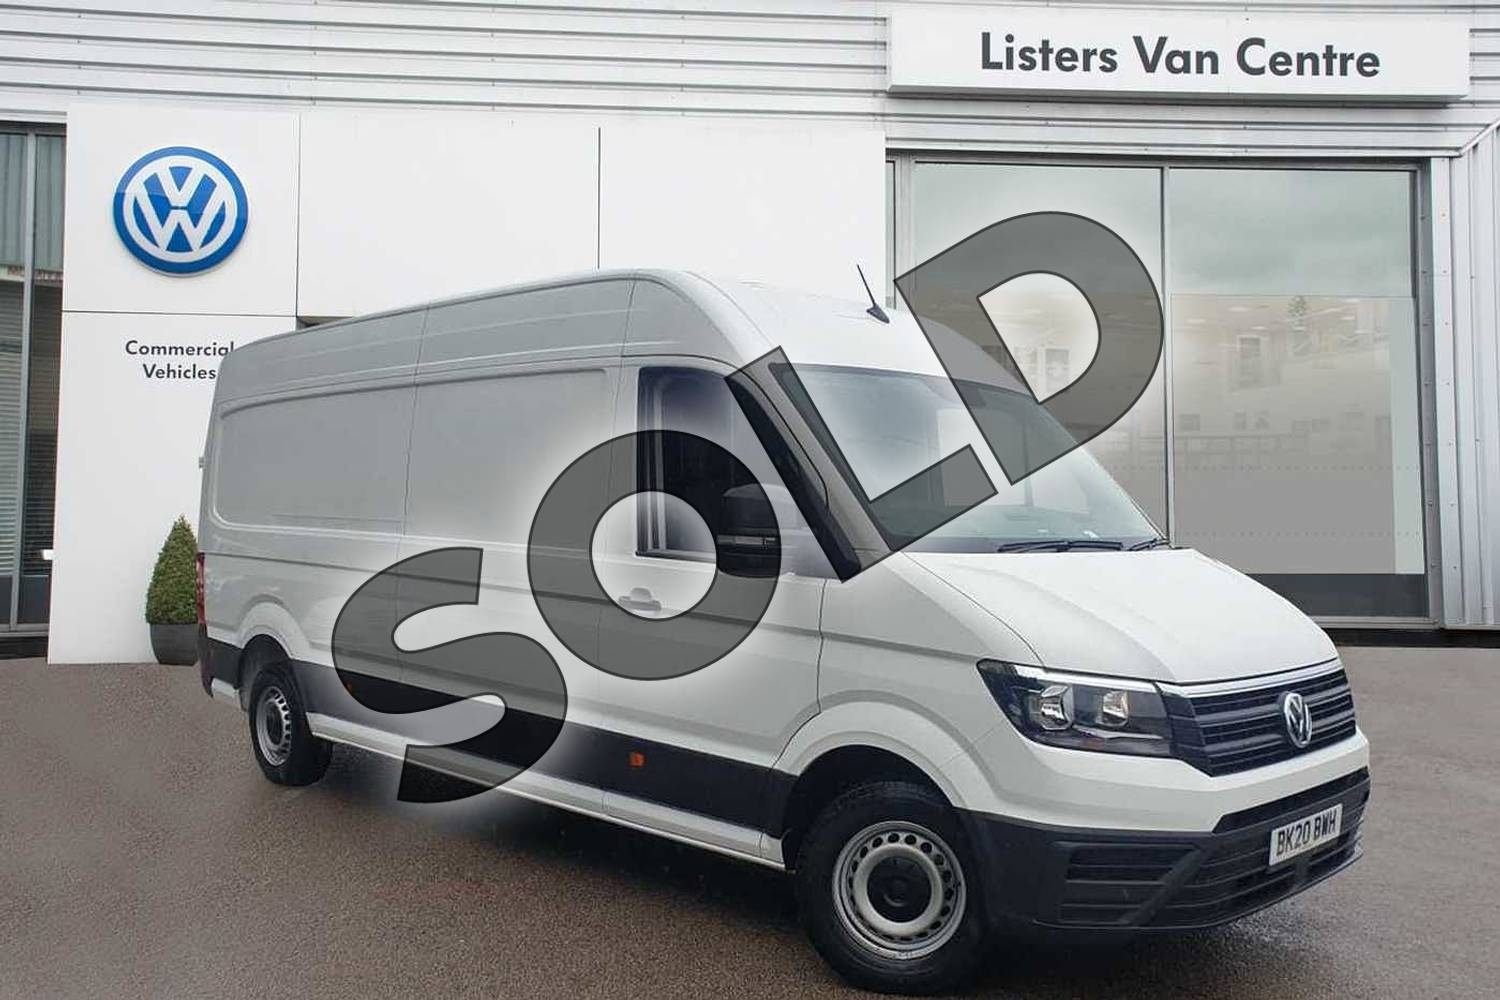 2020 Volkswagen Crafter CR35 LWB Diesel 2.0 TDI 102PS Startline High Roof Van in White at Listers Volkswagen Van Centre Coventry